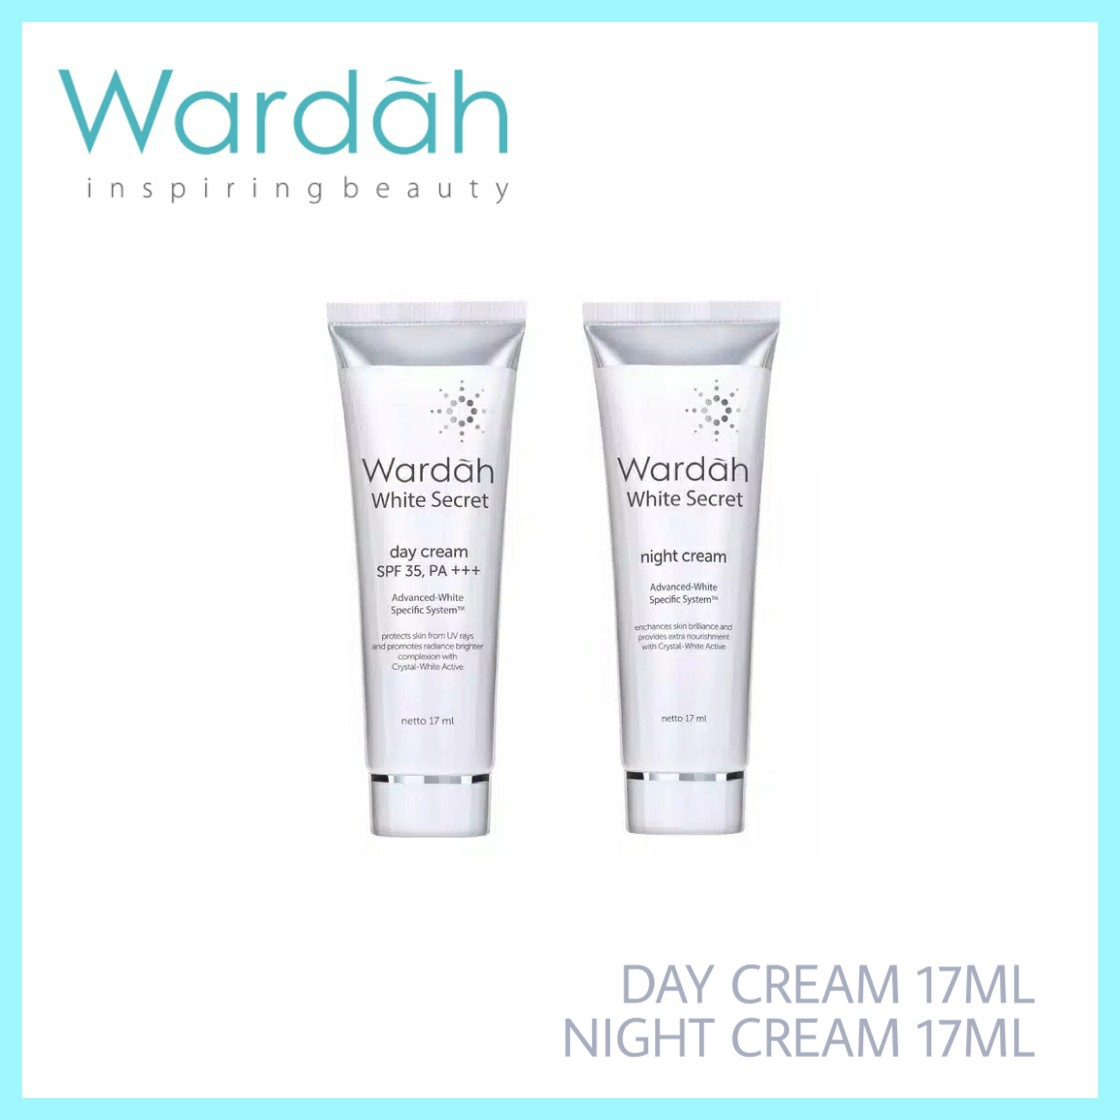 Wardah White Secret Day Cream & Night Cream 17ml